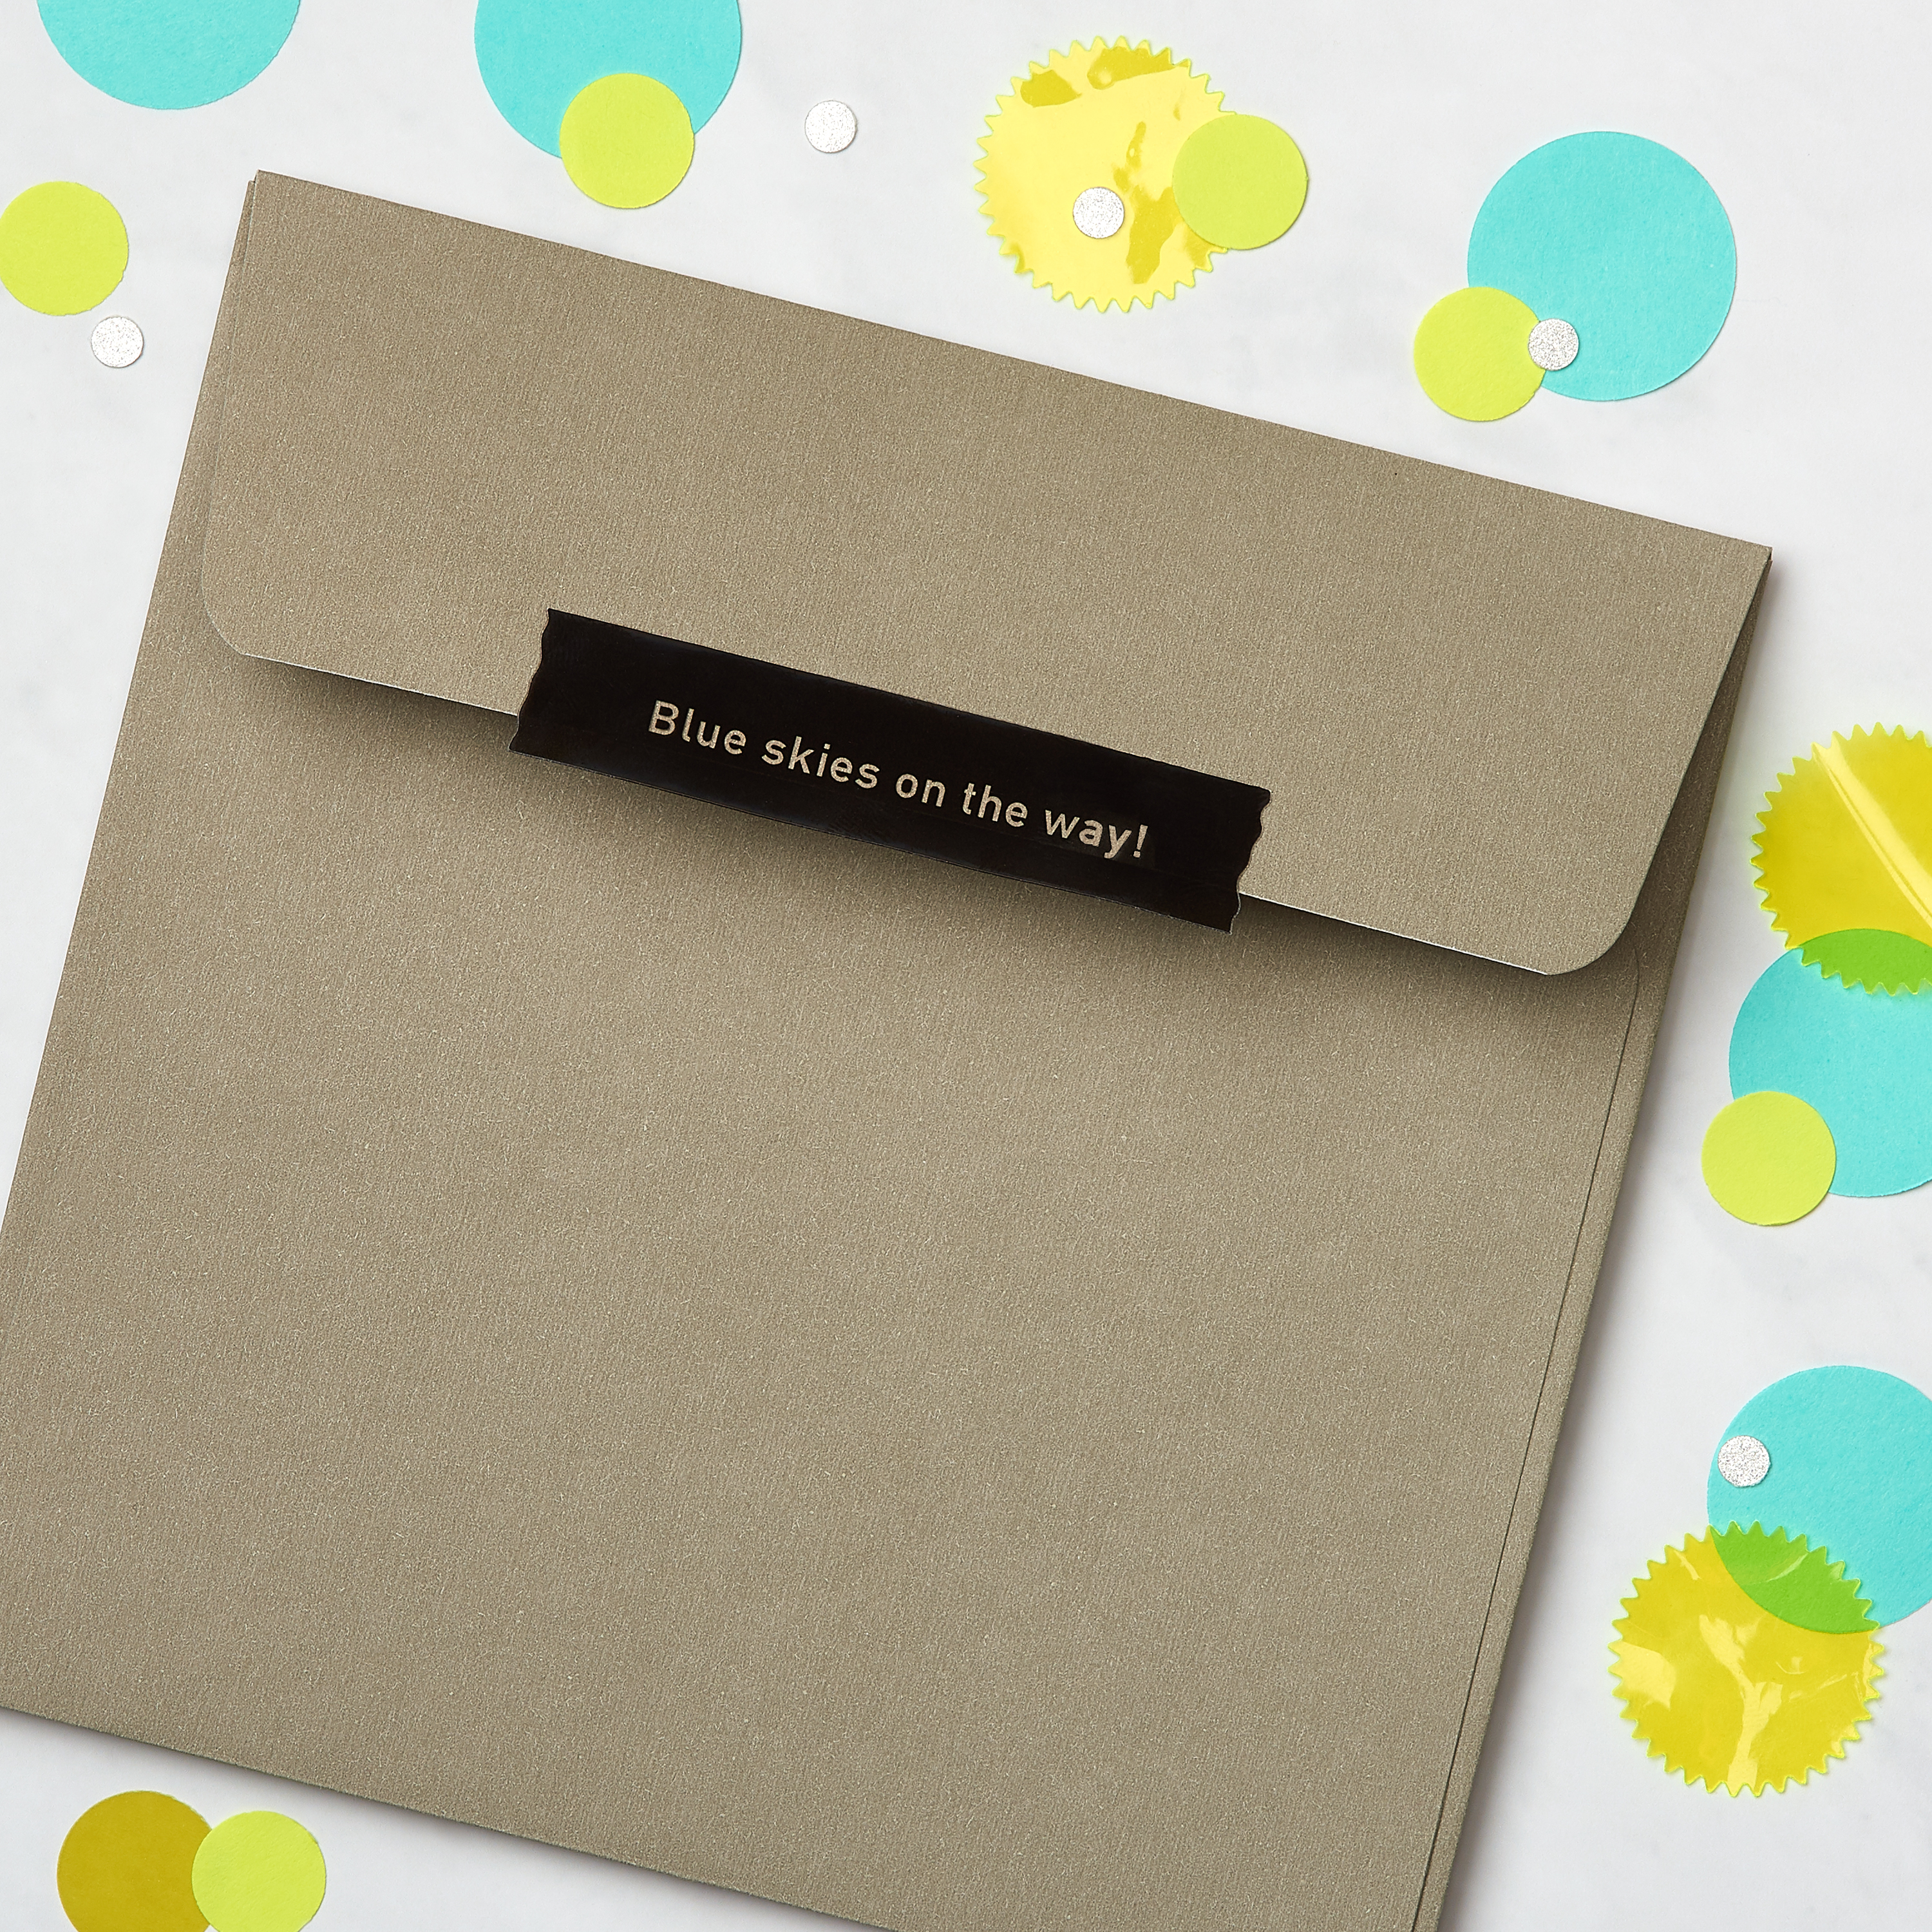 Rain Greeting Card - Support, Thinking of You, Encouragement image